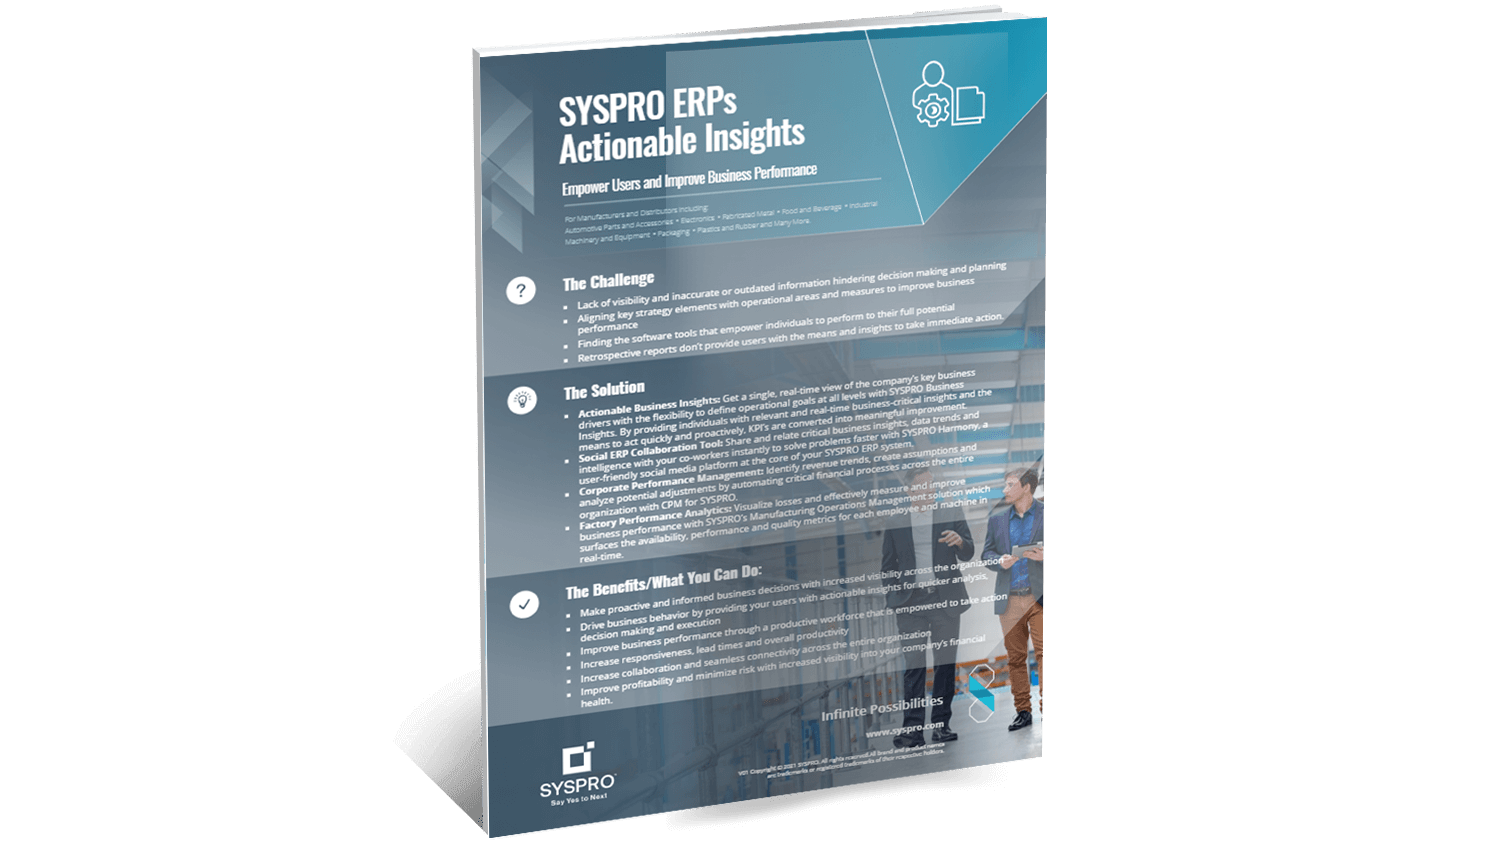 SYSPRO-ERP-software-system-actionable-insights-infographic